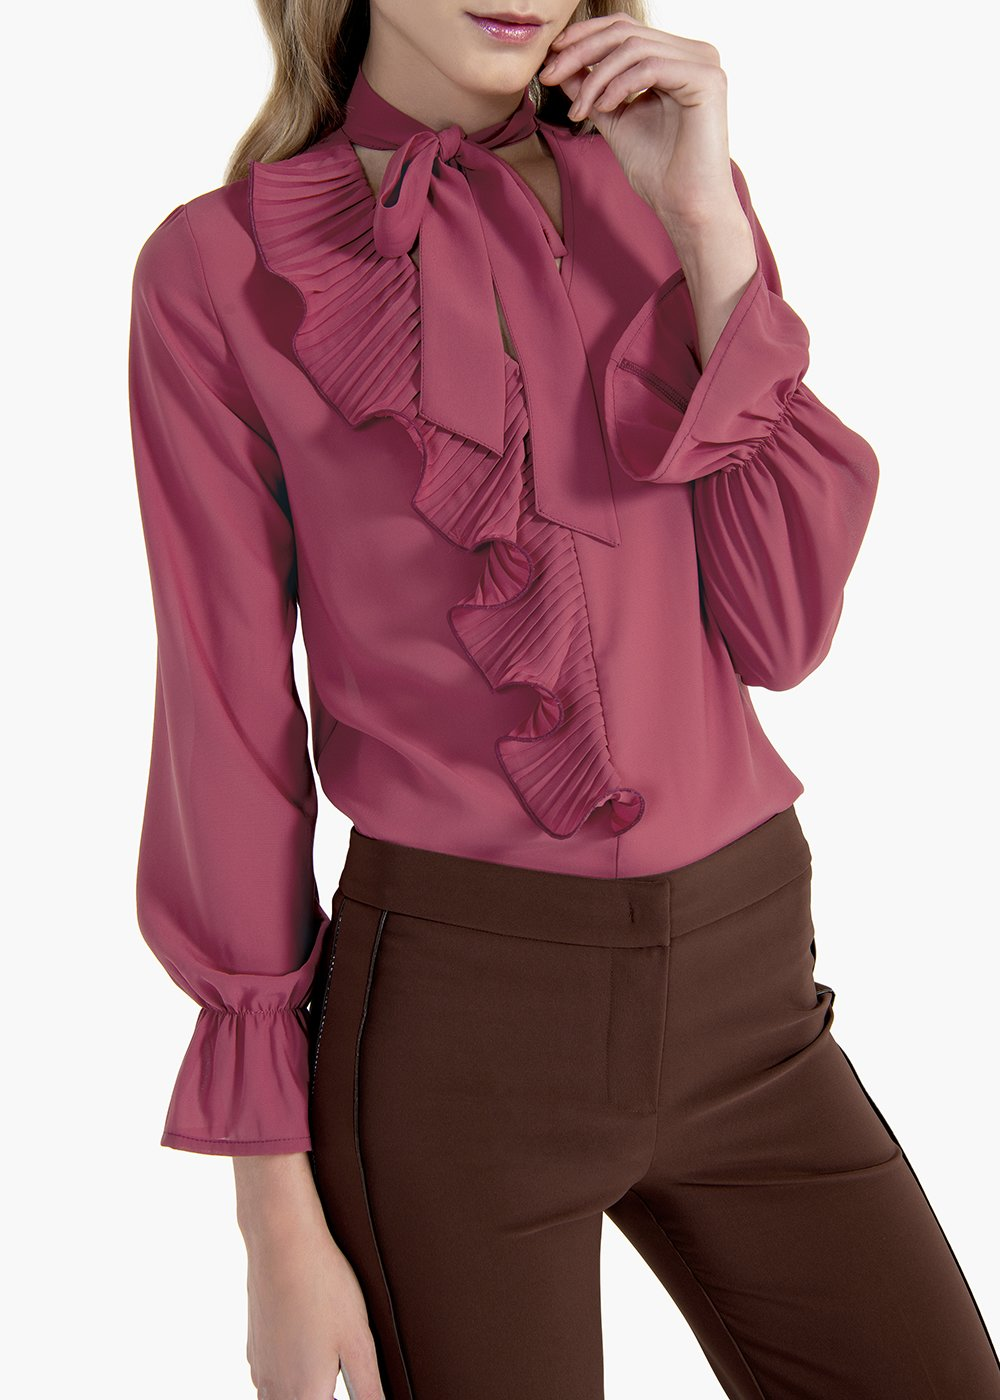 Cyprien georgette shirt with V-neck - Floreale - Woman